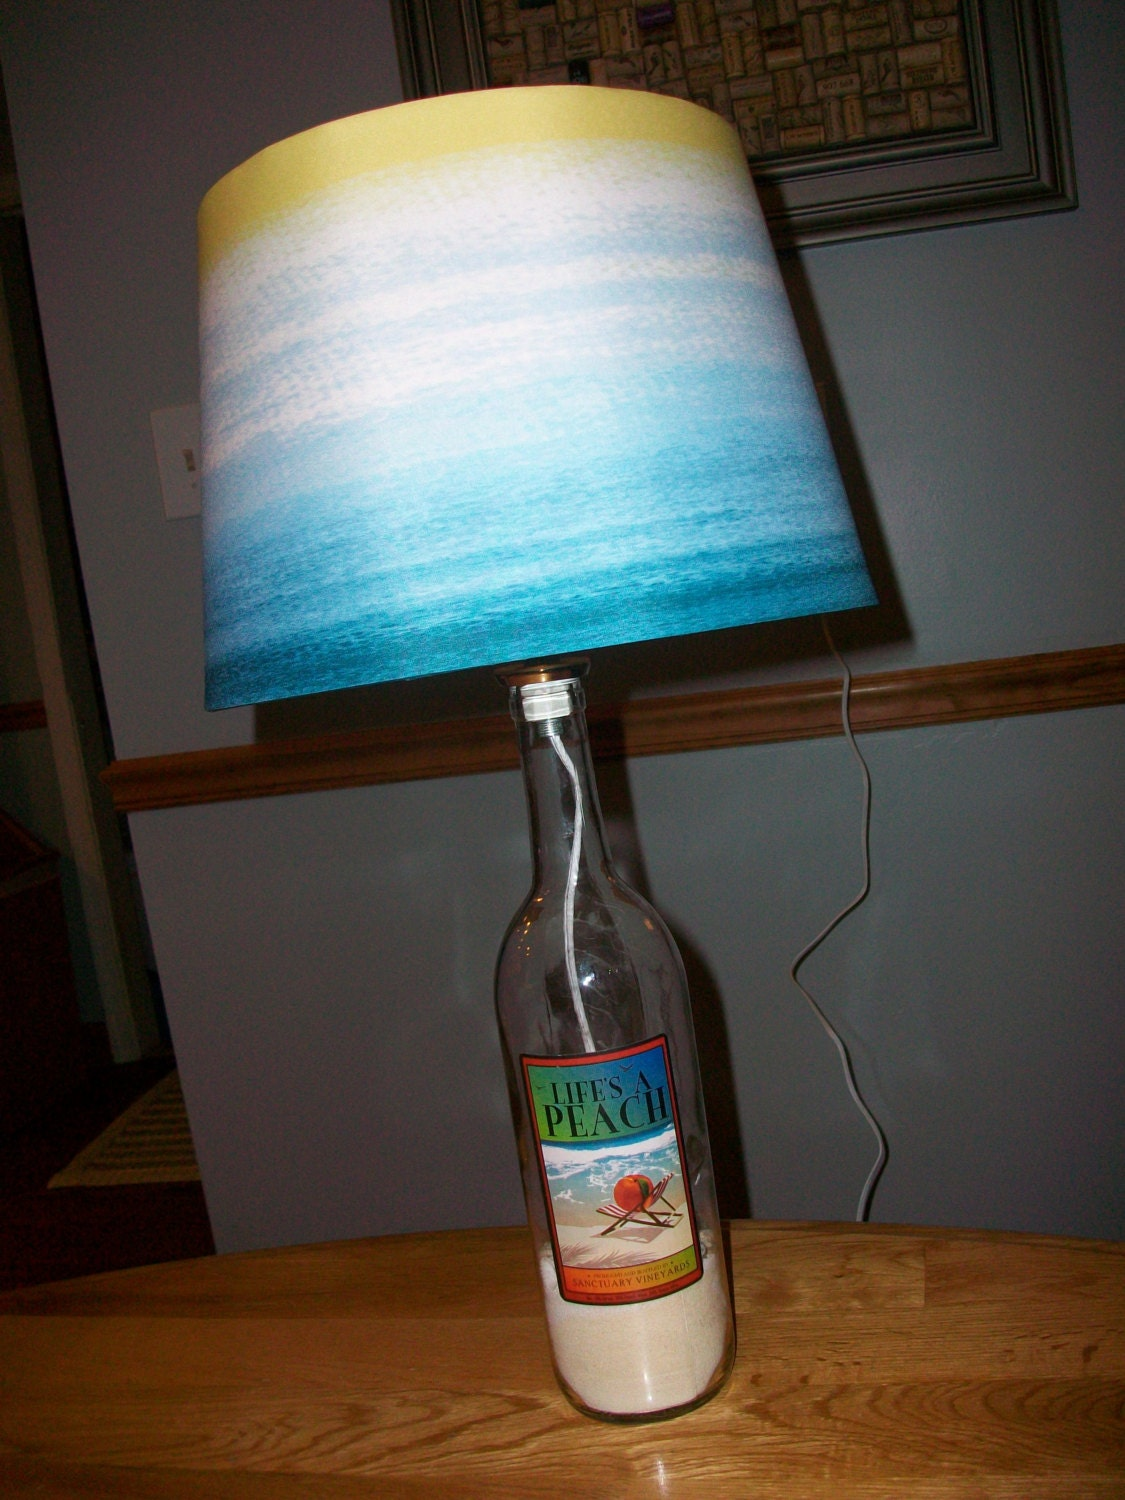 life 39 s a peach wine bottle lamp with lamp by saltwaterandwine. Black Bedroom Furniture Sets. Home Design Ideas